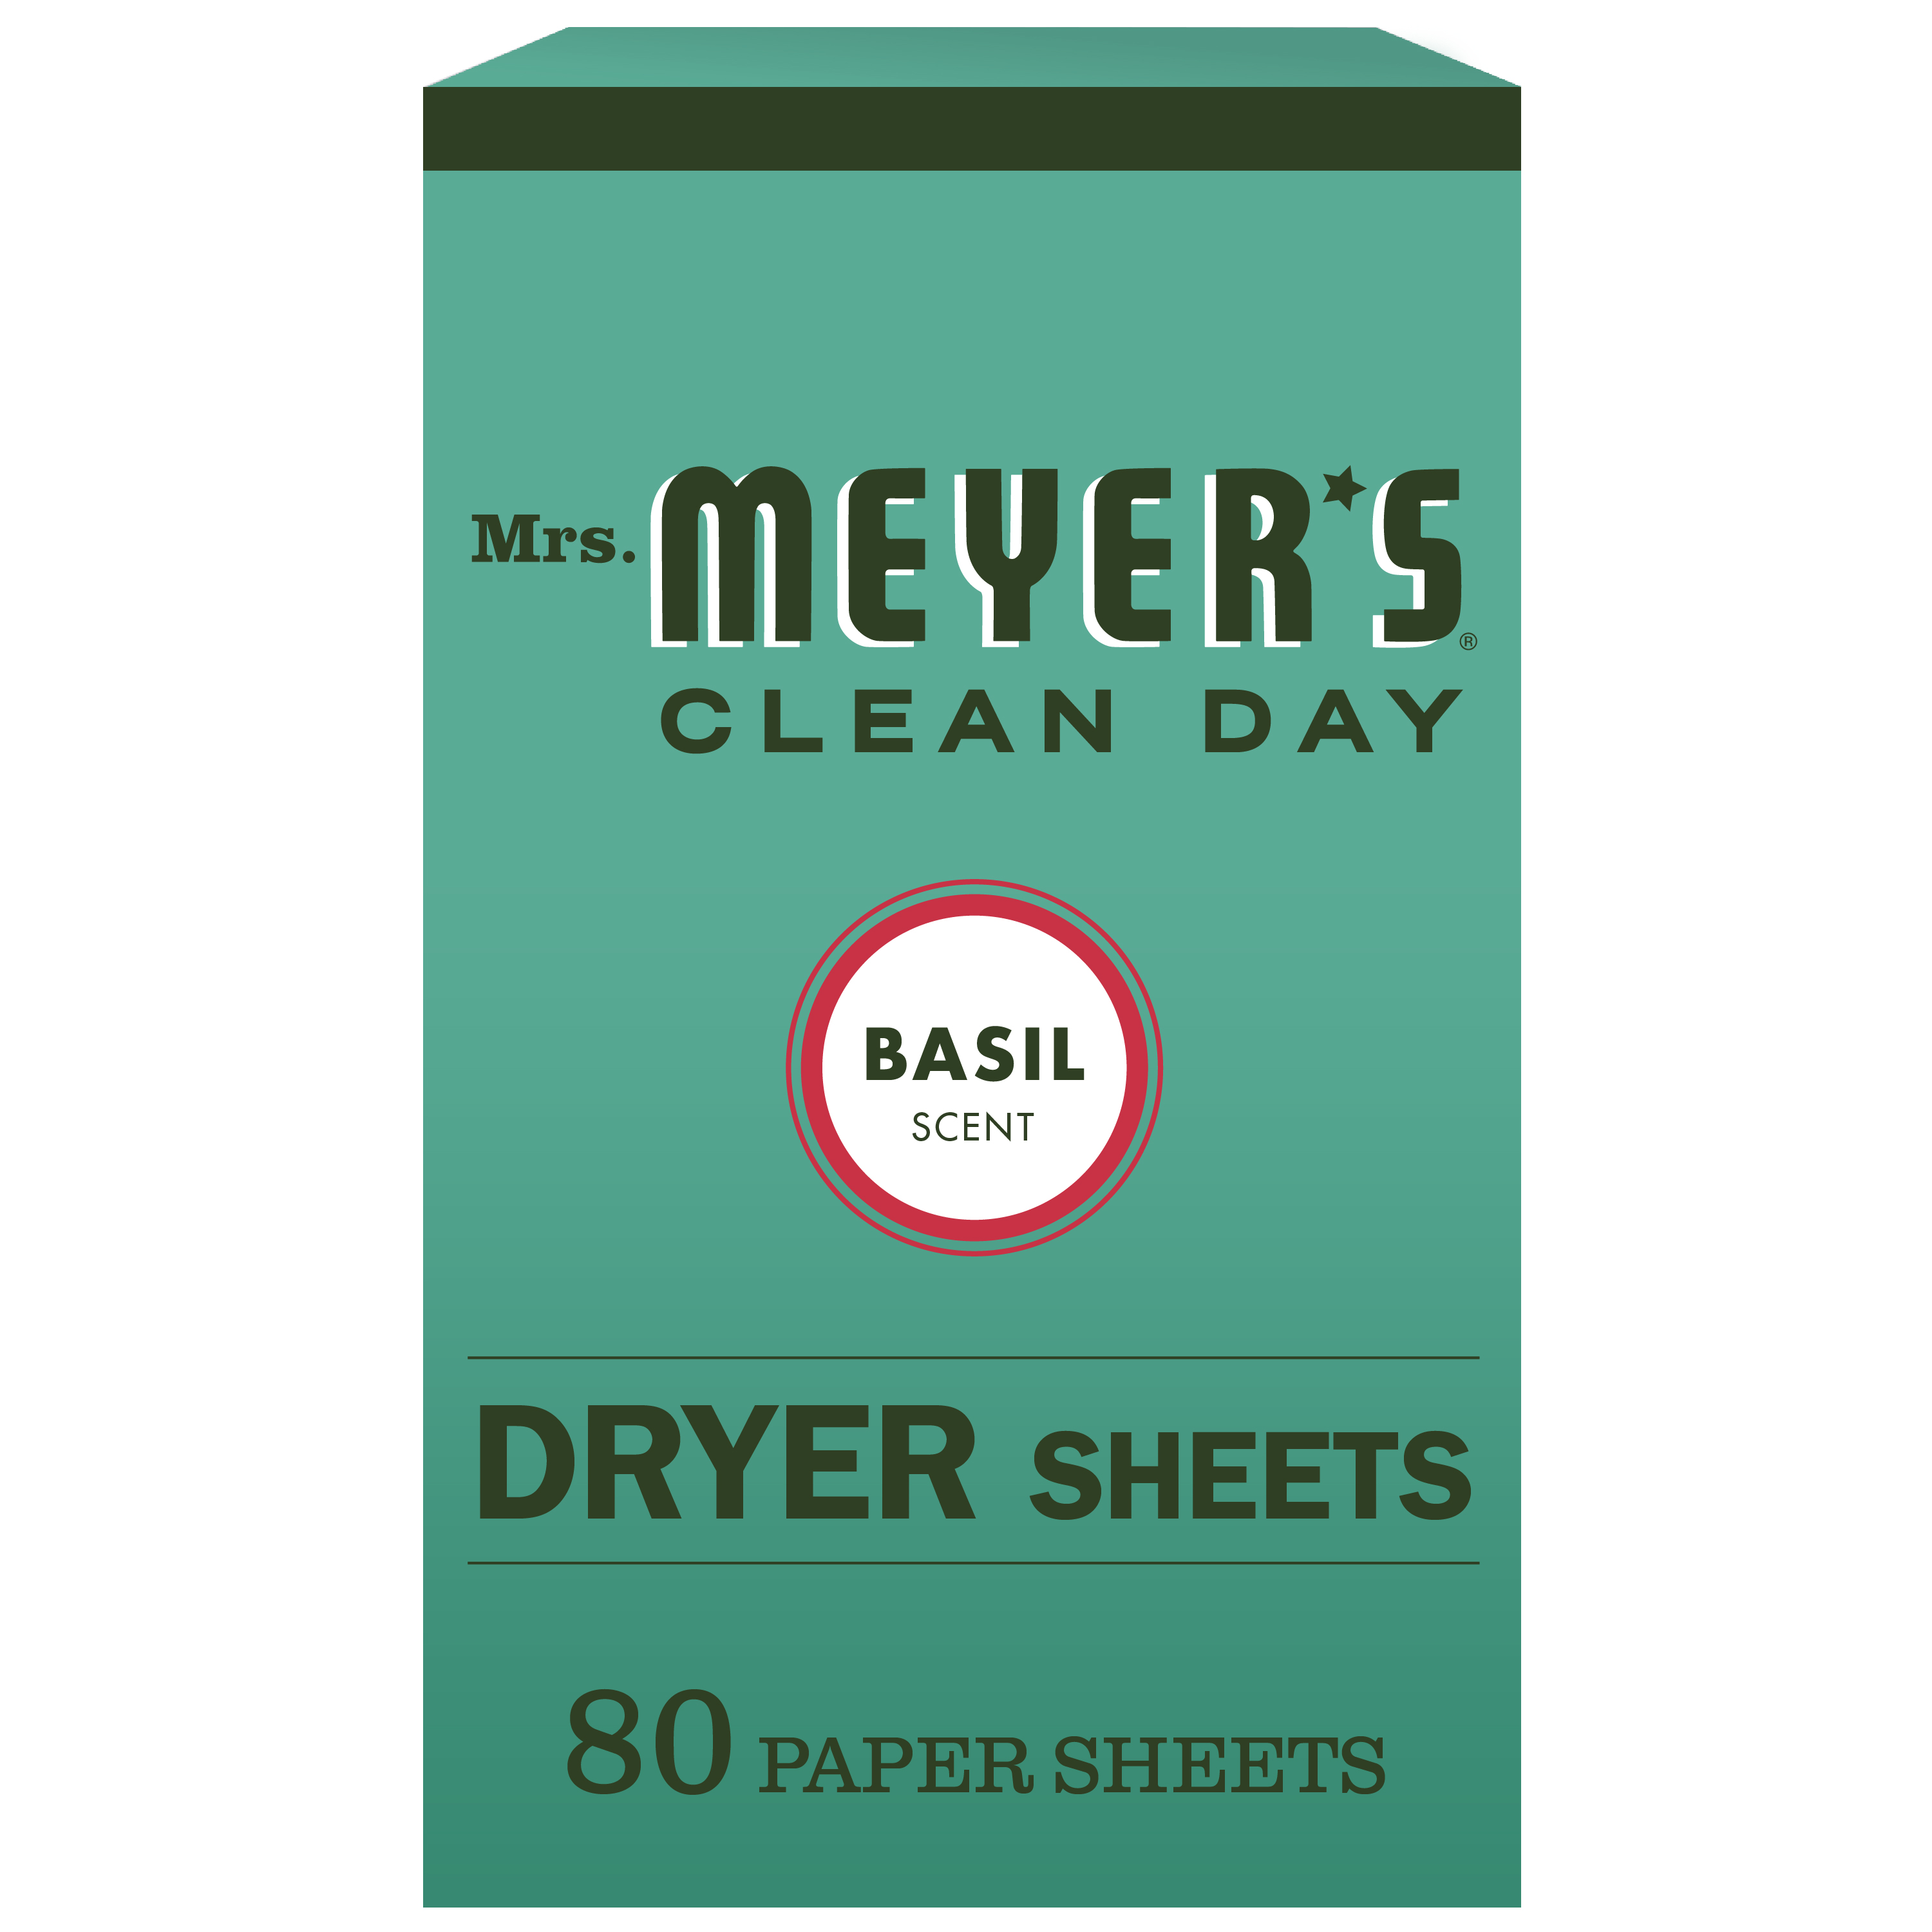 Mrs. Meyer's Clean Day Dryer Sheets, Basil Scent, 80 count